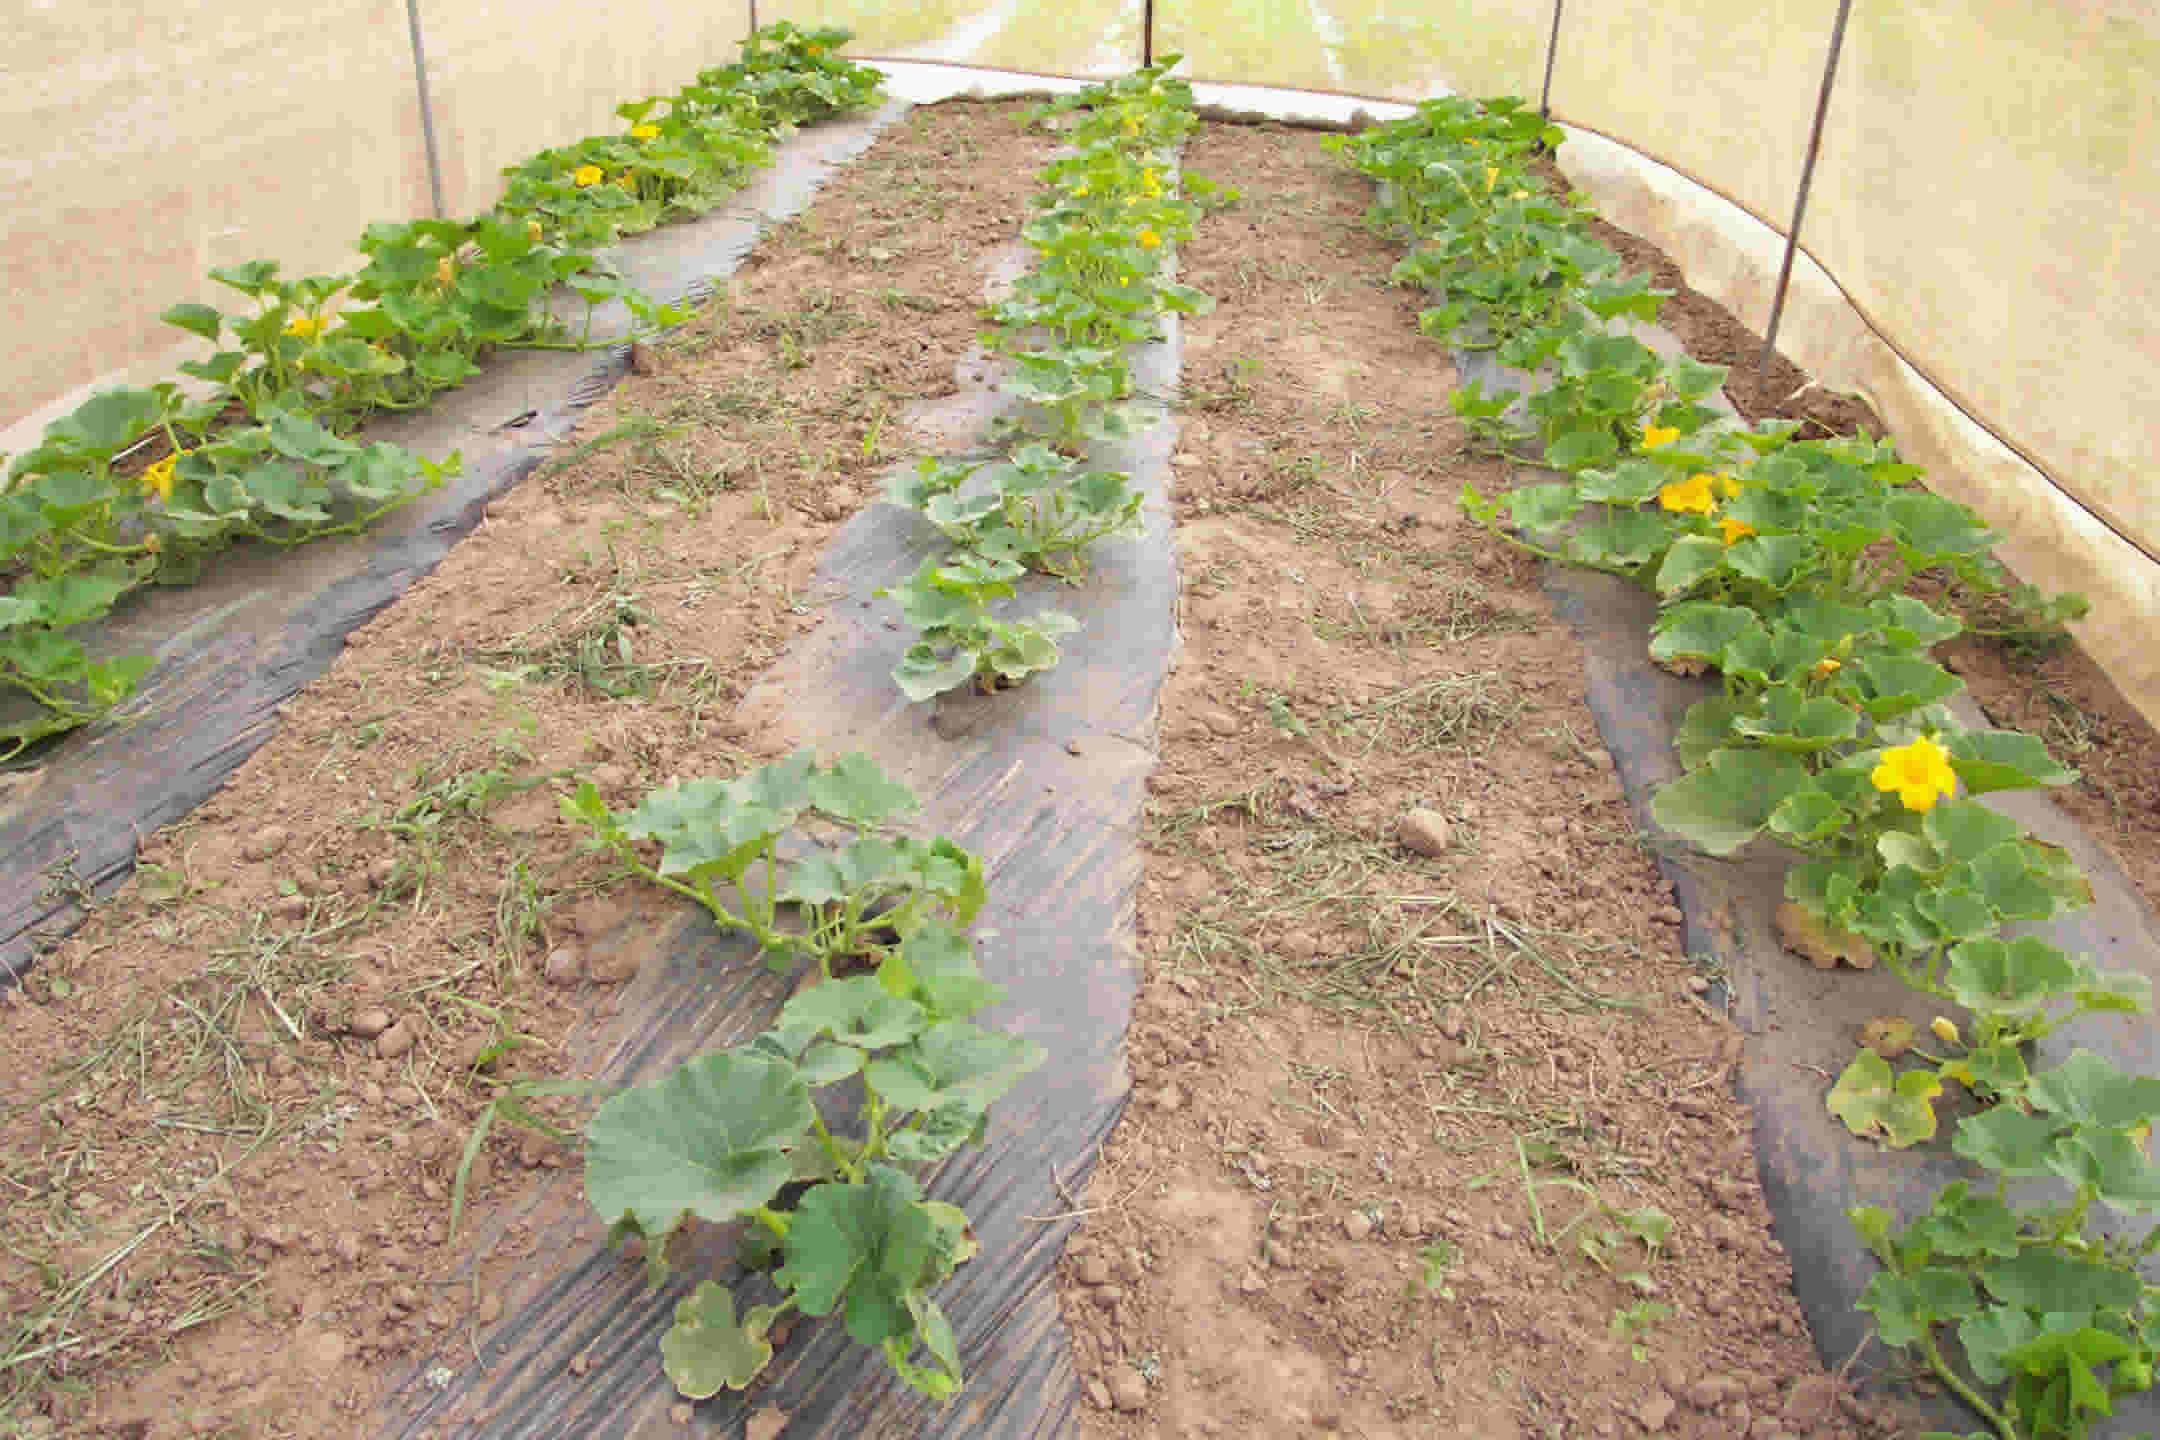 Squash Production